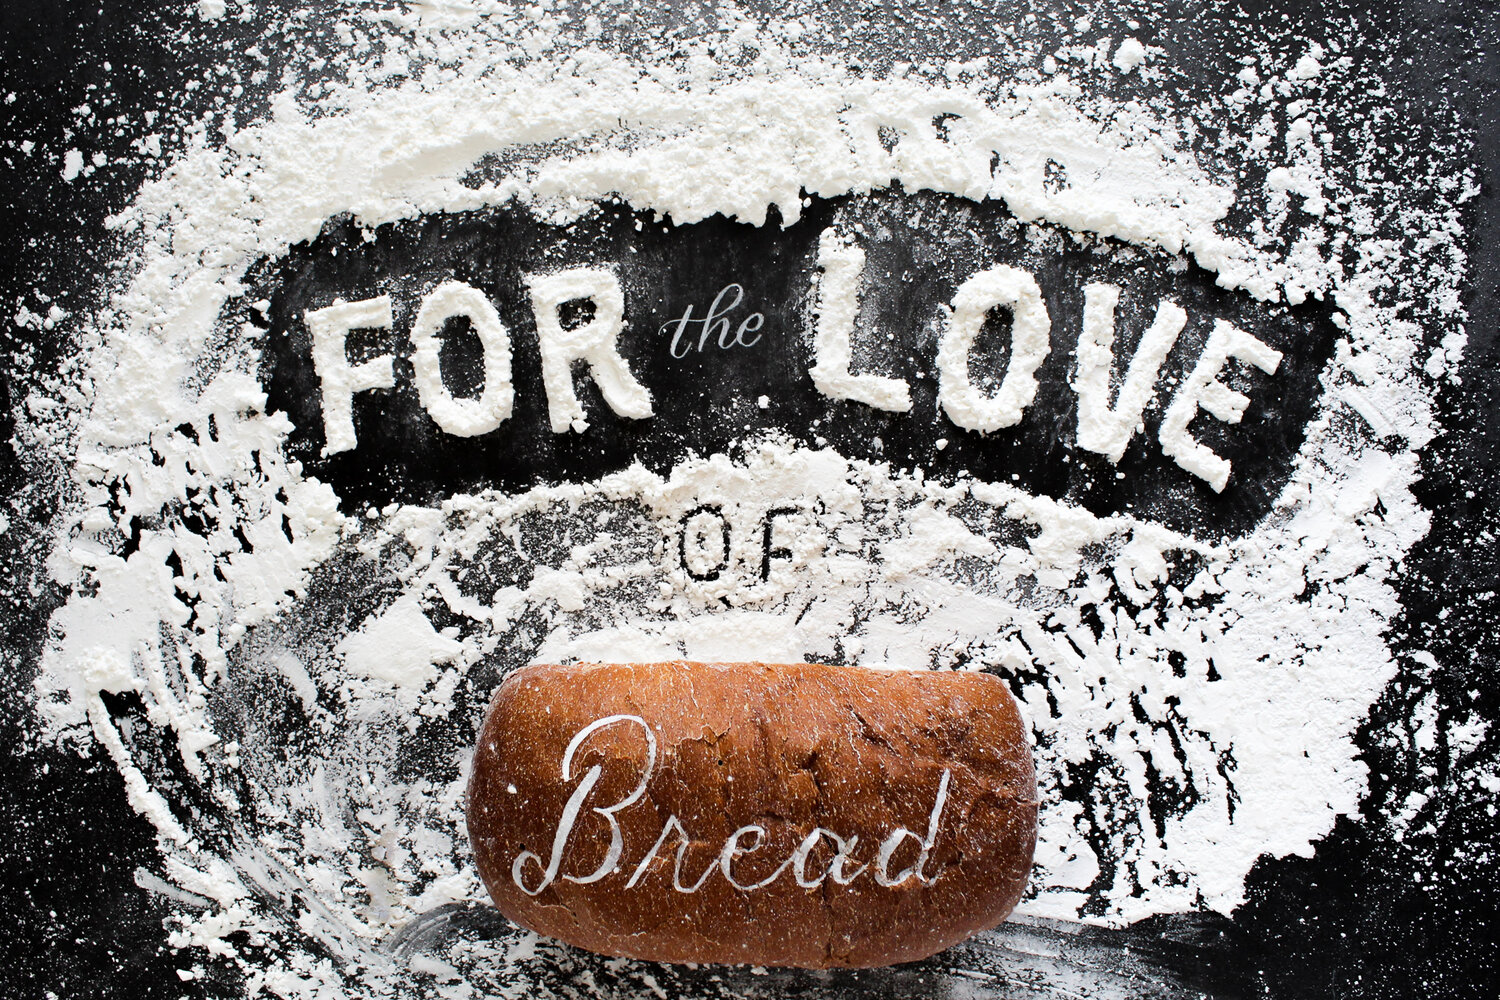 food typography - Lettering created with flour and bread.